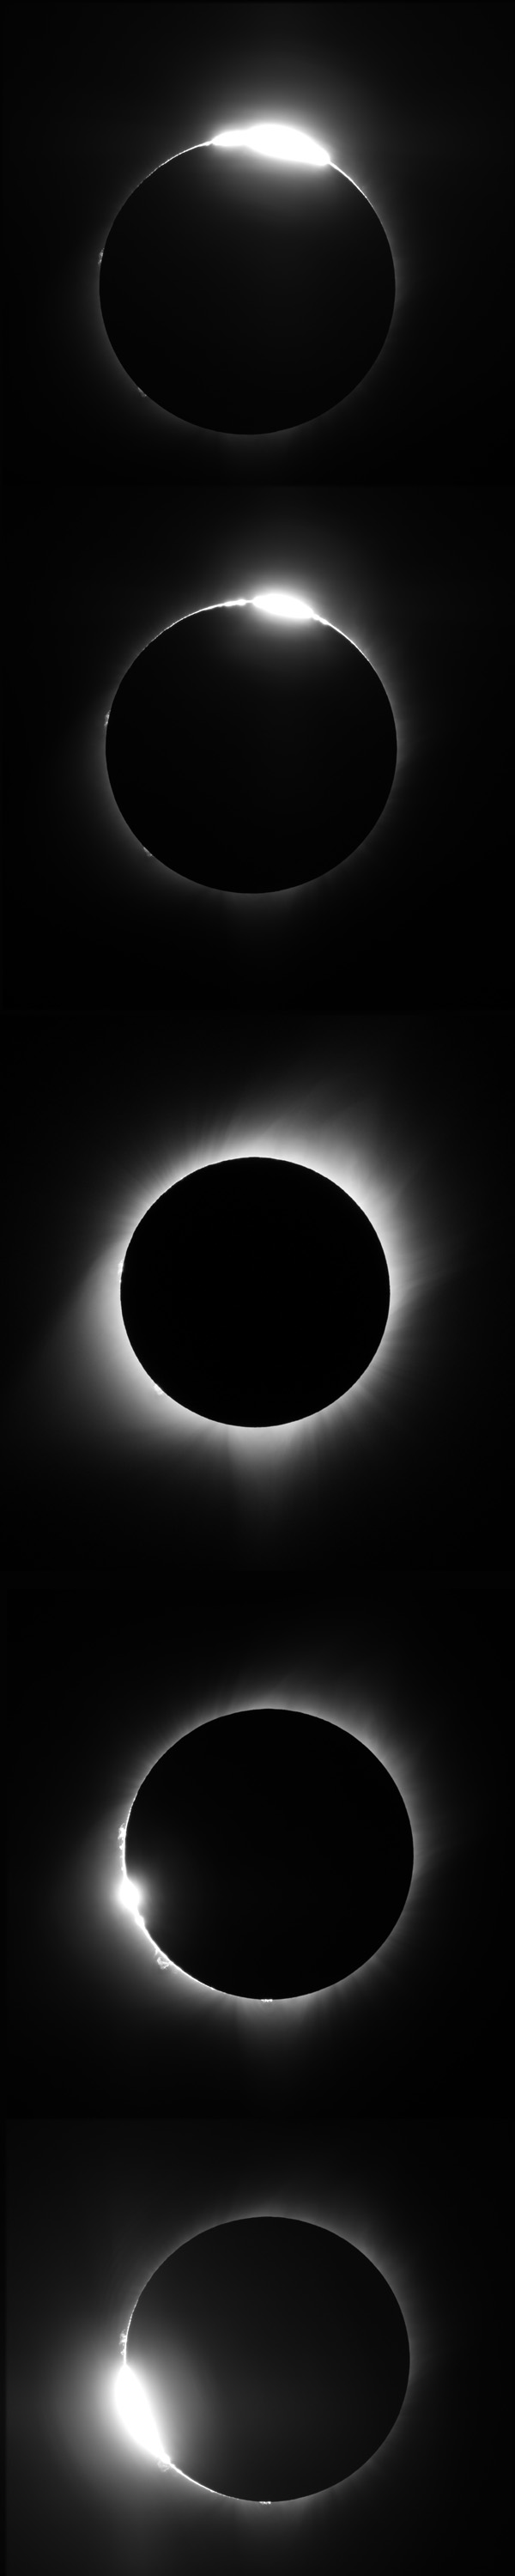 Eclipse-3